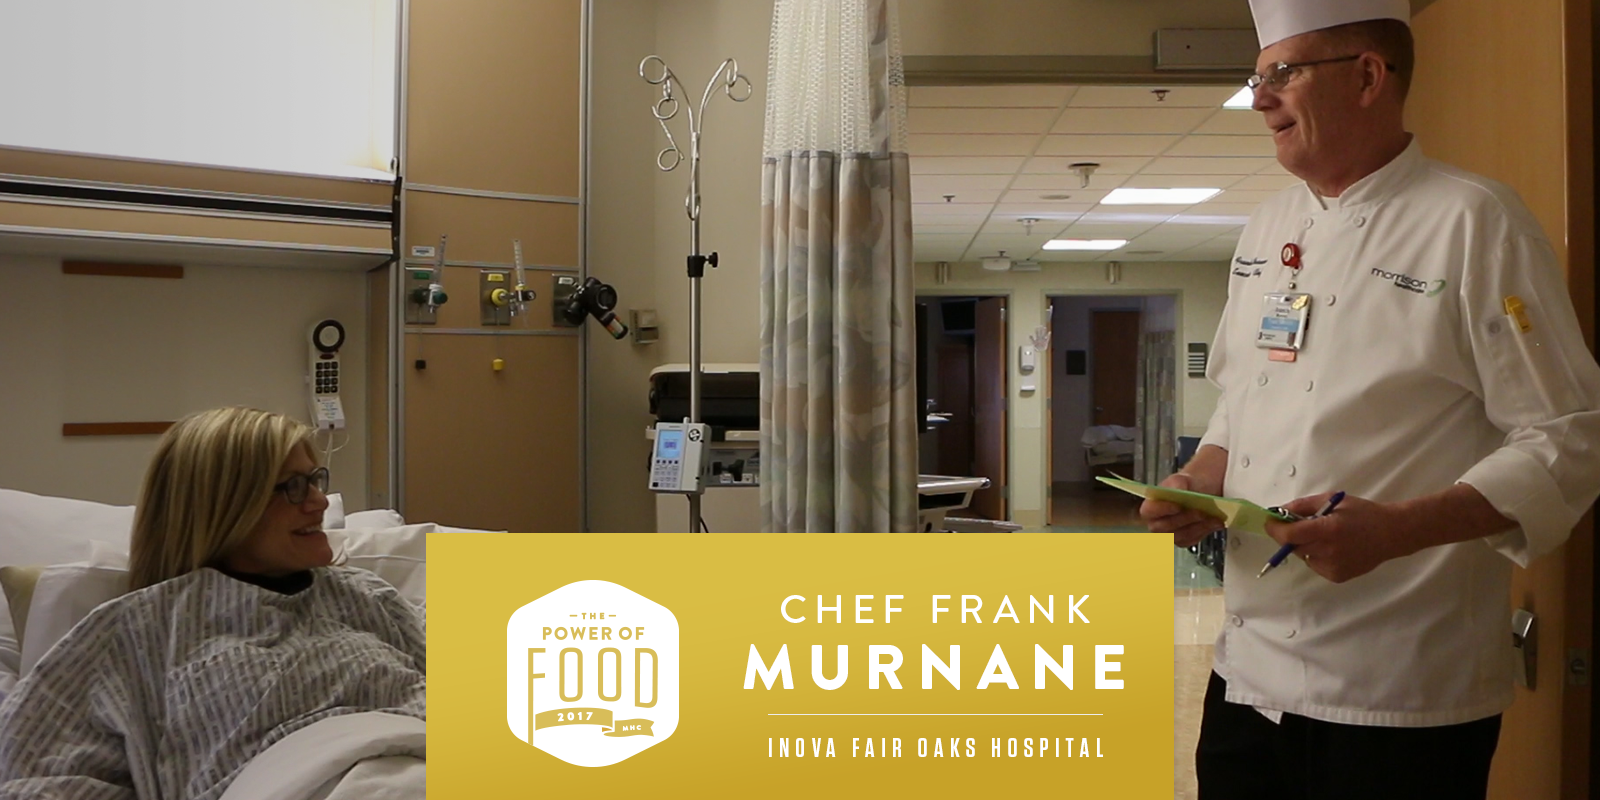 Chef Murnane with Inova Fair Oaks Hospital and MHC